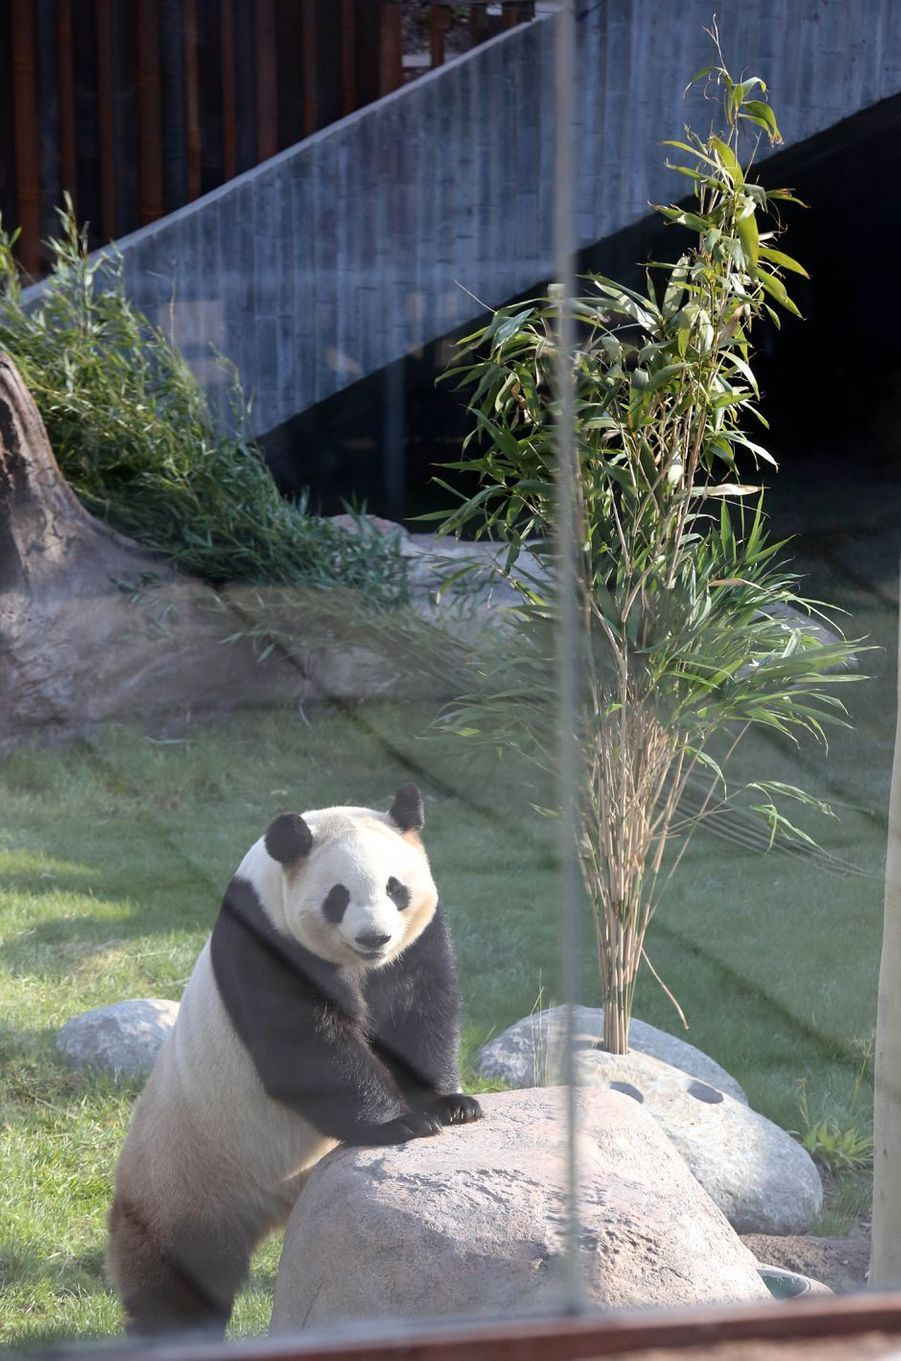 L'un ds pandas chinois du zoo de Copenhague, le 11 avril 2019